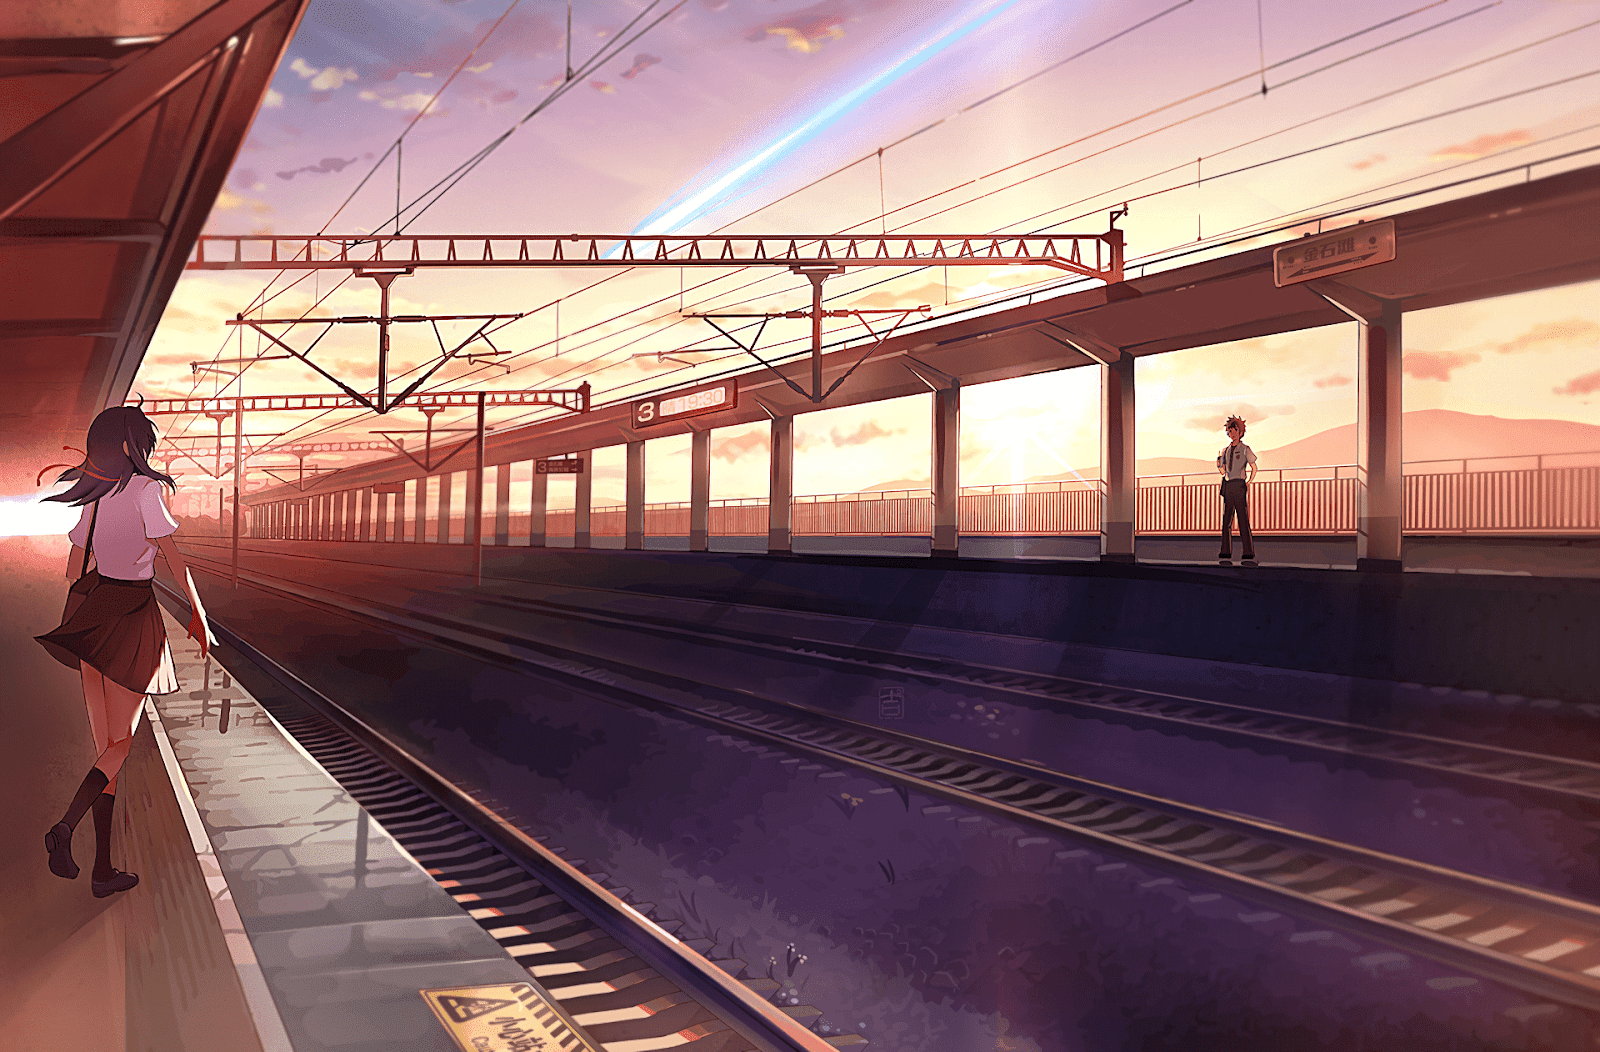 AowVN%2B%252838%2529 - [ Hình Nền ] Anime Your Name. - Kimi no Nawa full HD cực đẹp | Anime Wallpaper